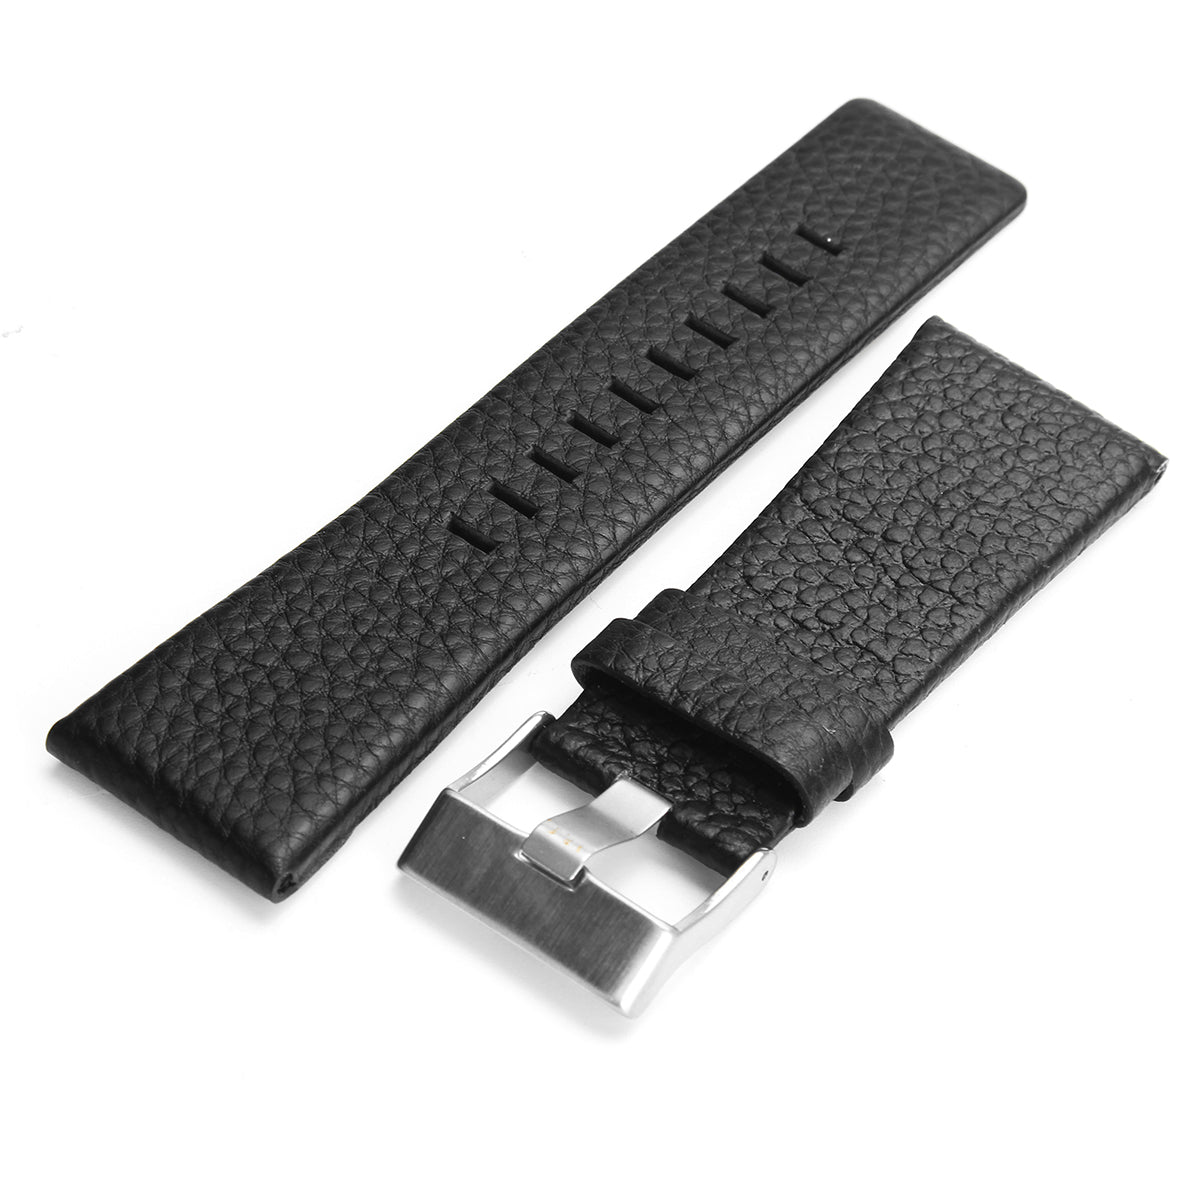 Replacement 22/24/26/27/28mm Leather Watch Band Strap For Diesel DZ4210